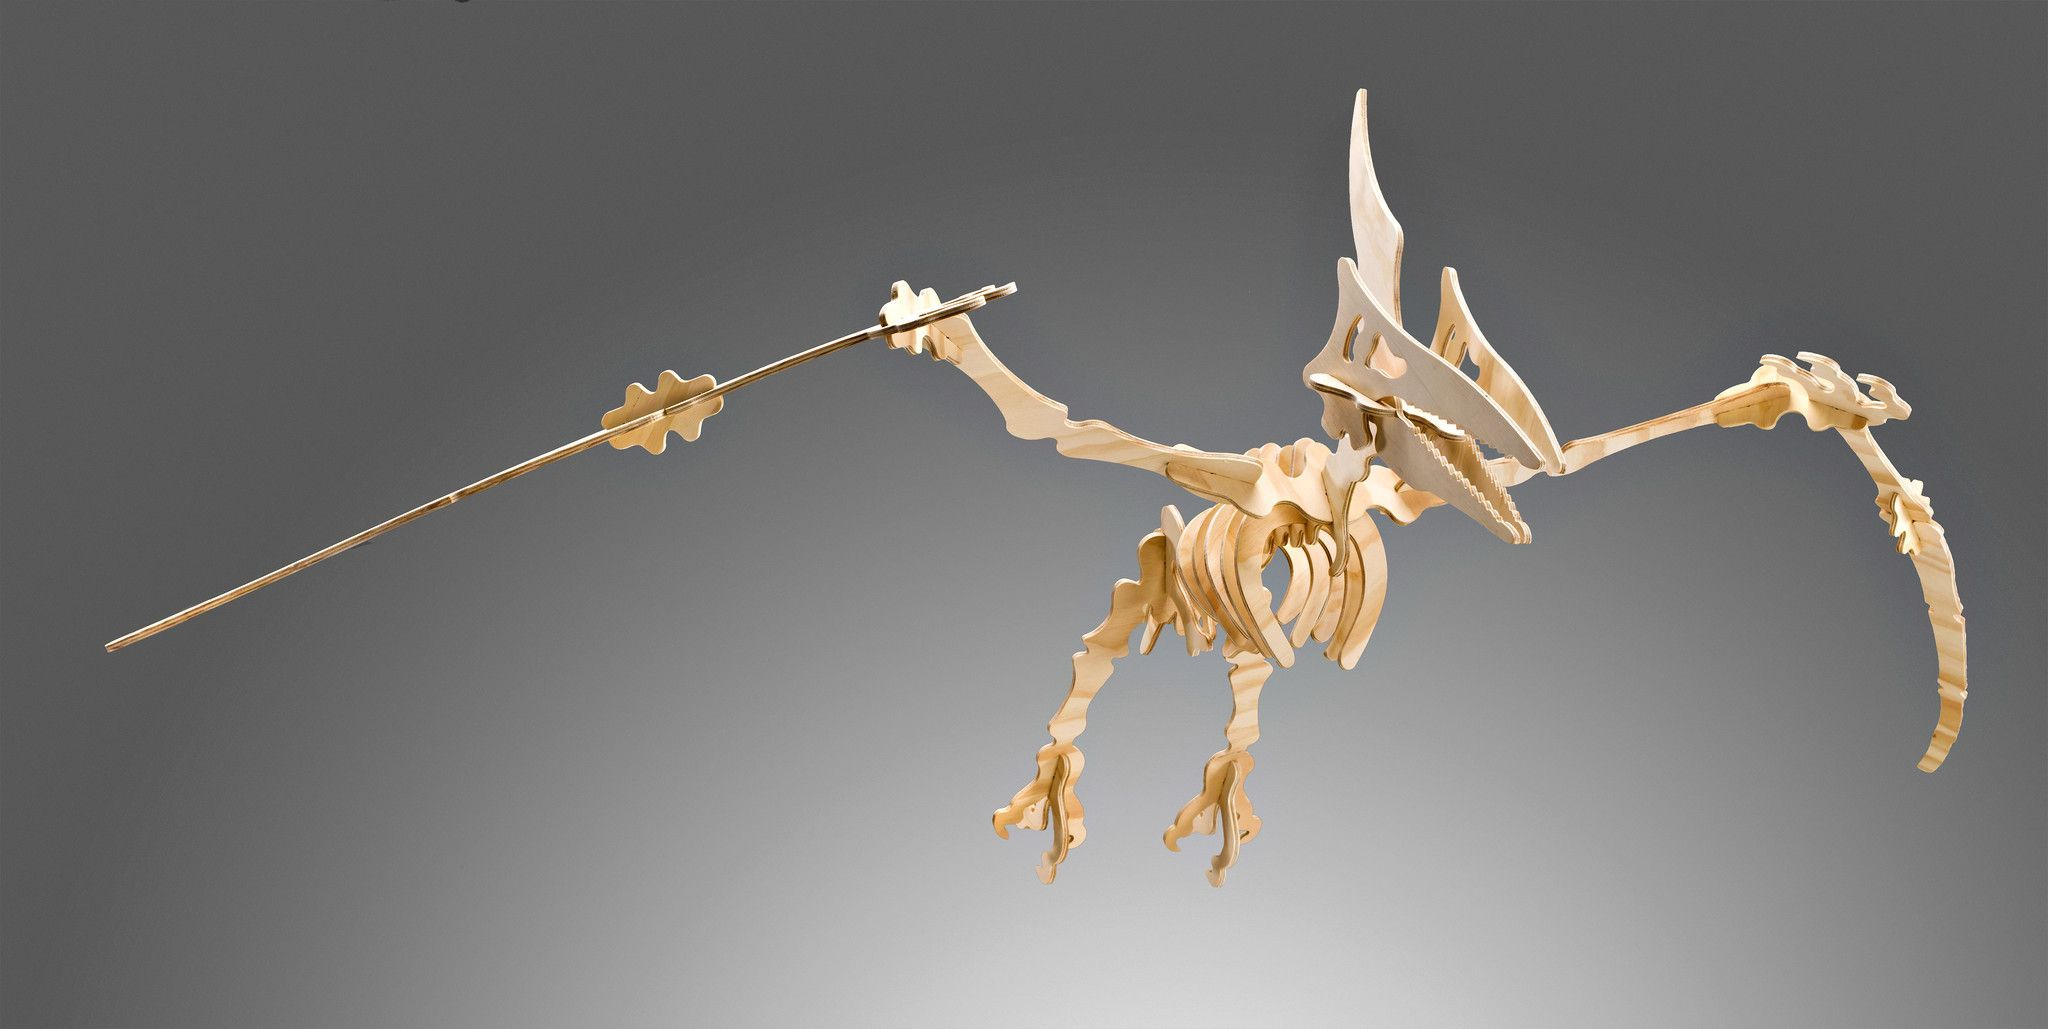 Pterodactyl 3d Dinosaur Puzzle In